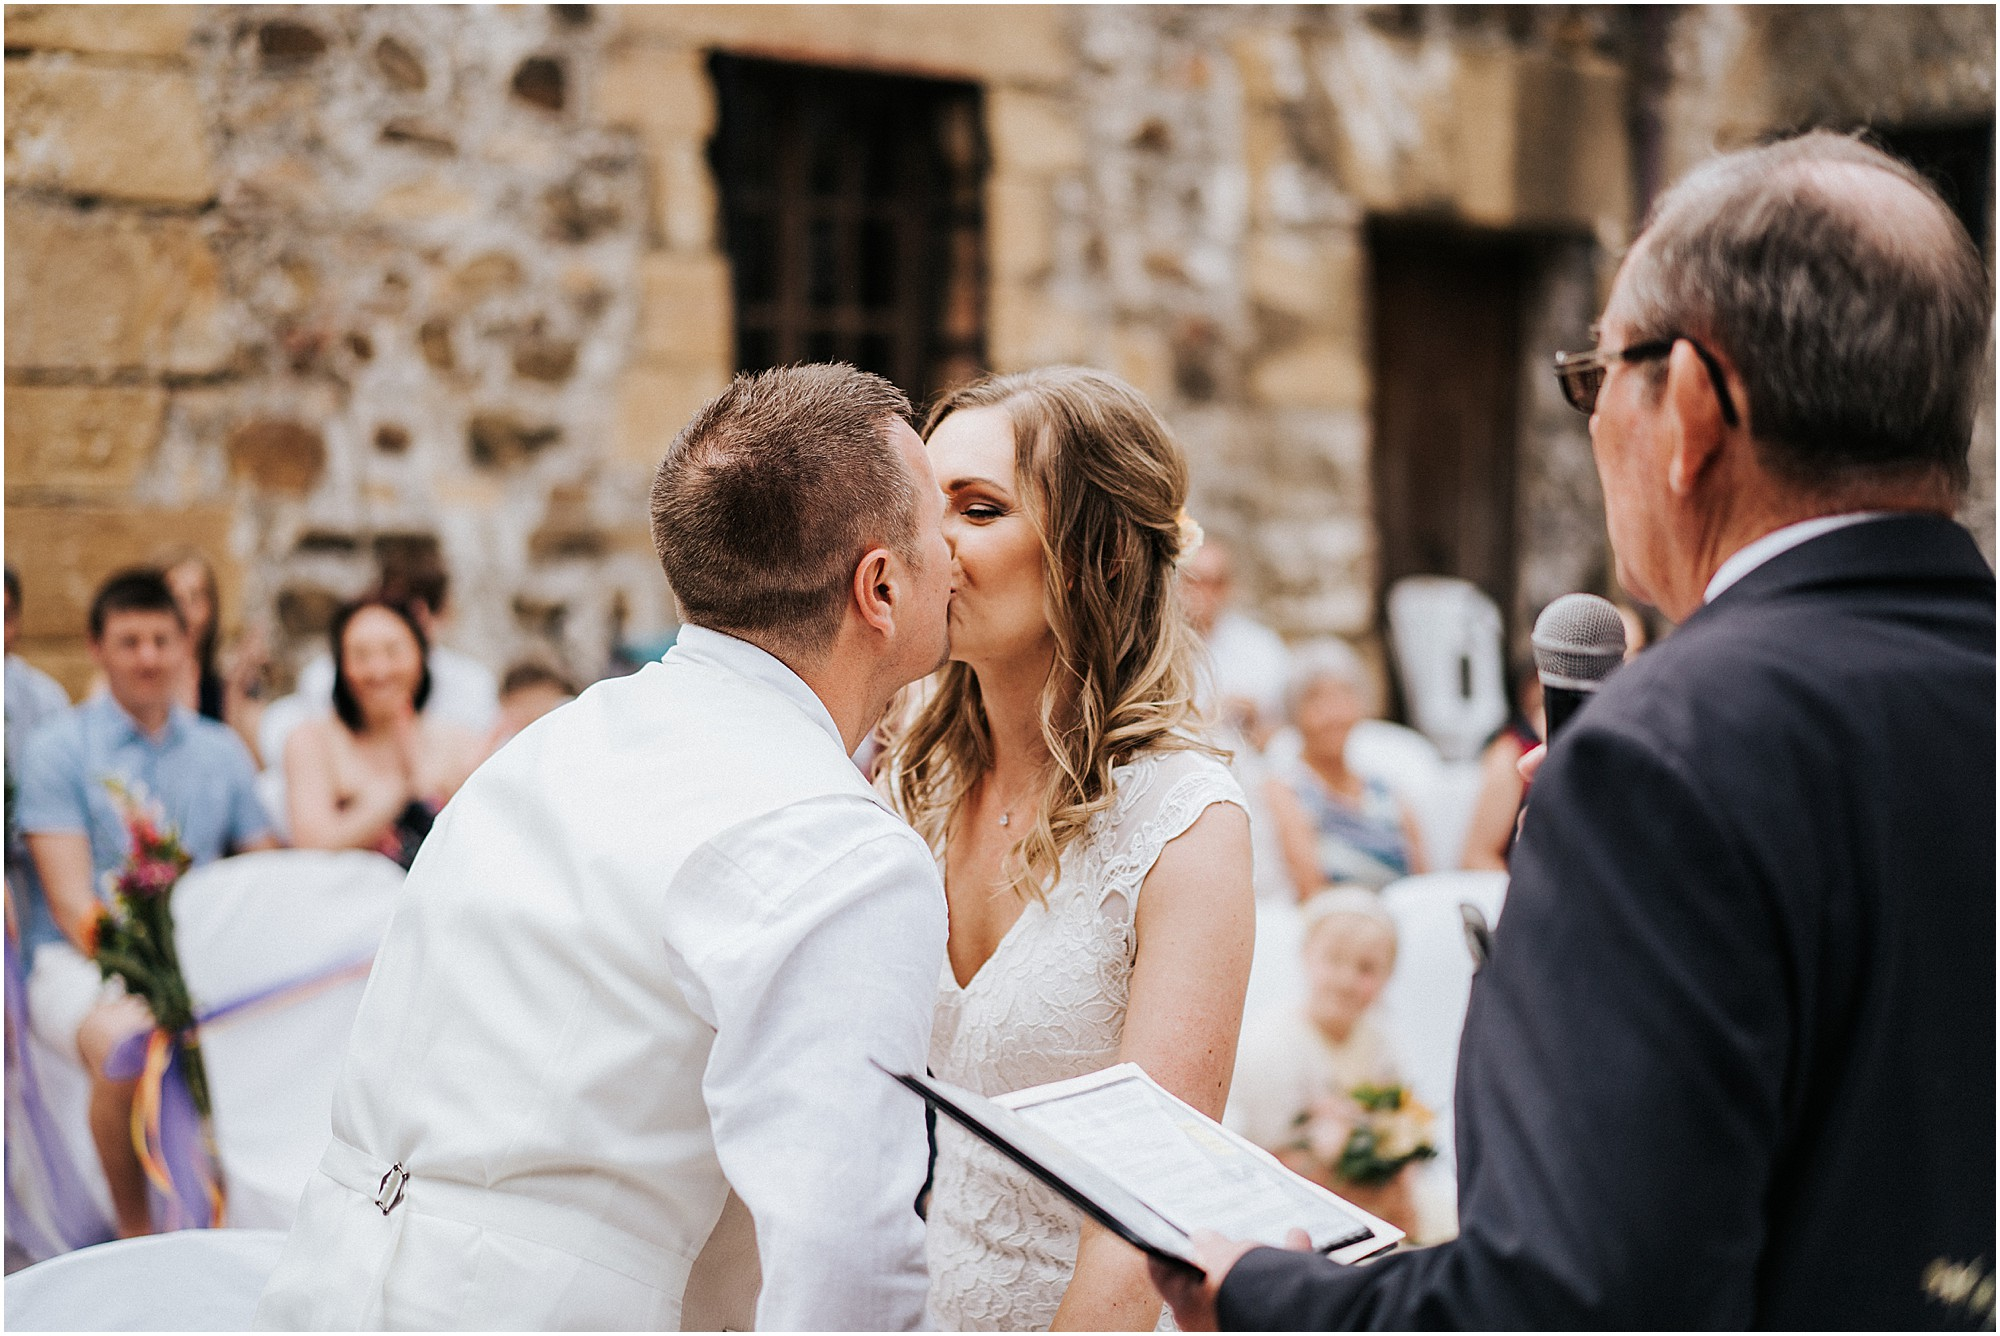 Cheshire Wedding Photography - Castillo Duquesa, Spain